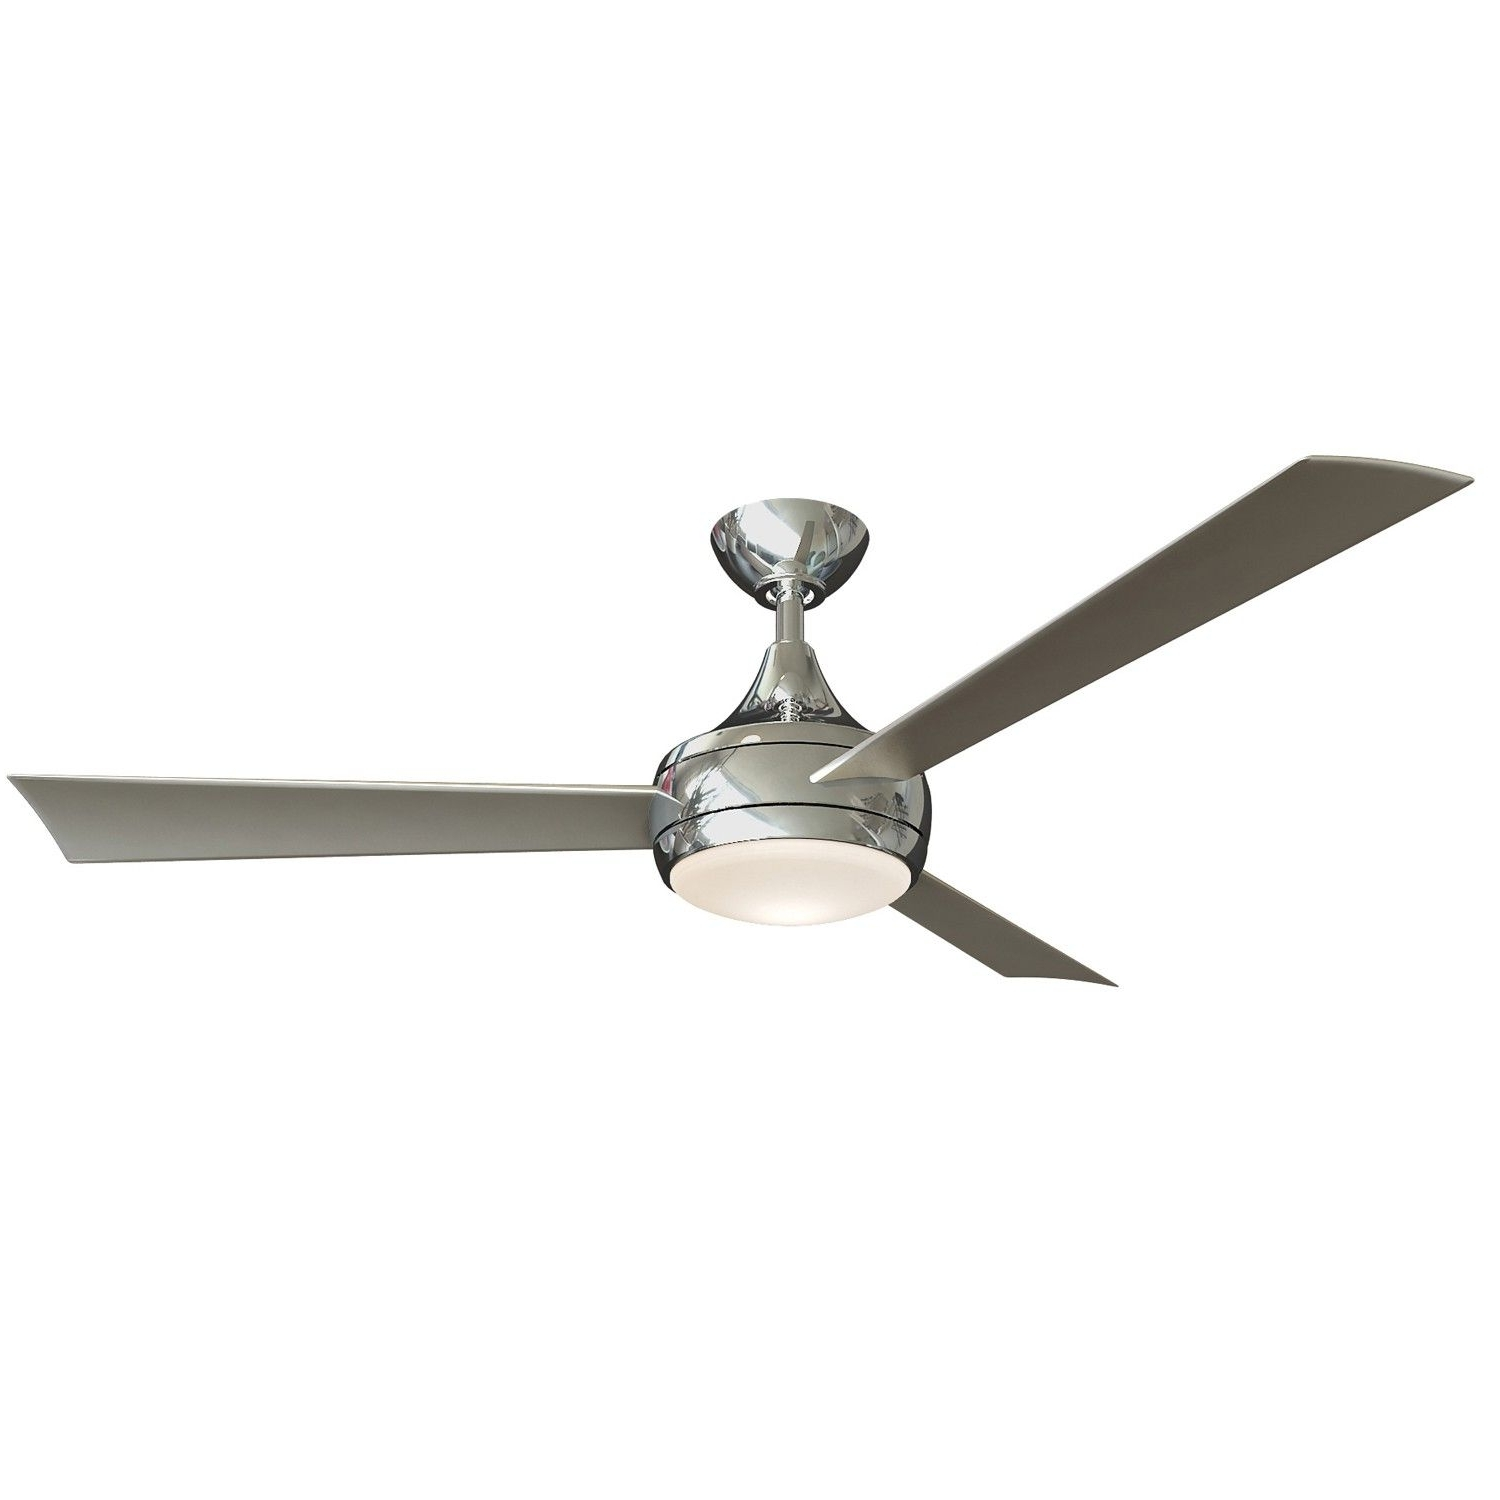 Popular Friday Favorites: Top 10 Led Ceiling Fans (View 5 of 20)